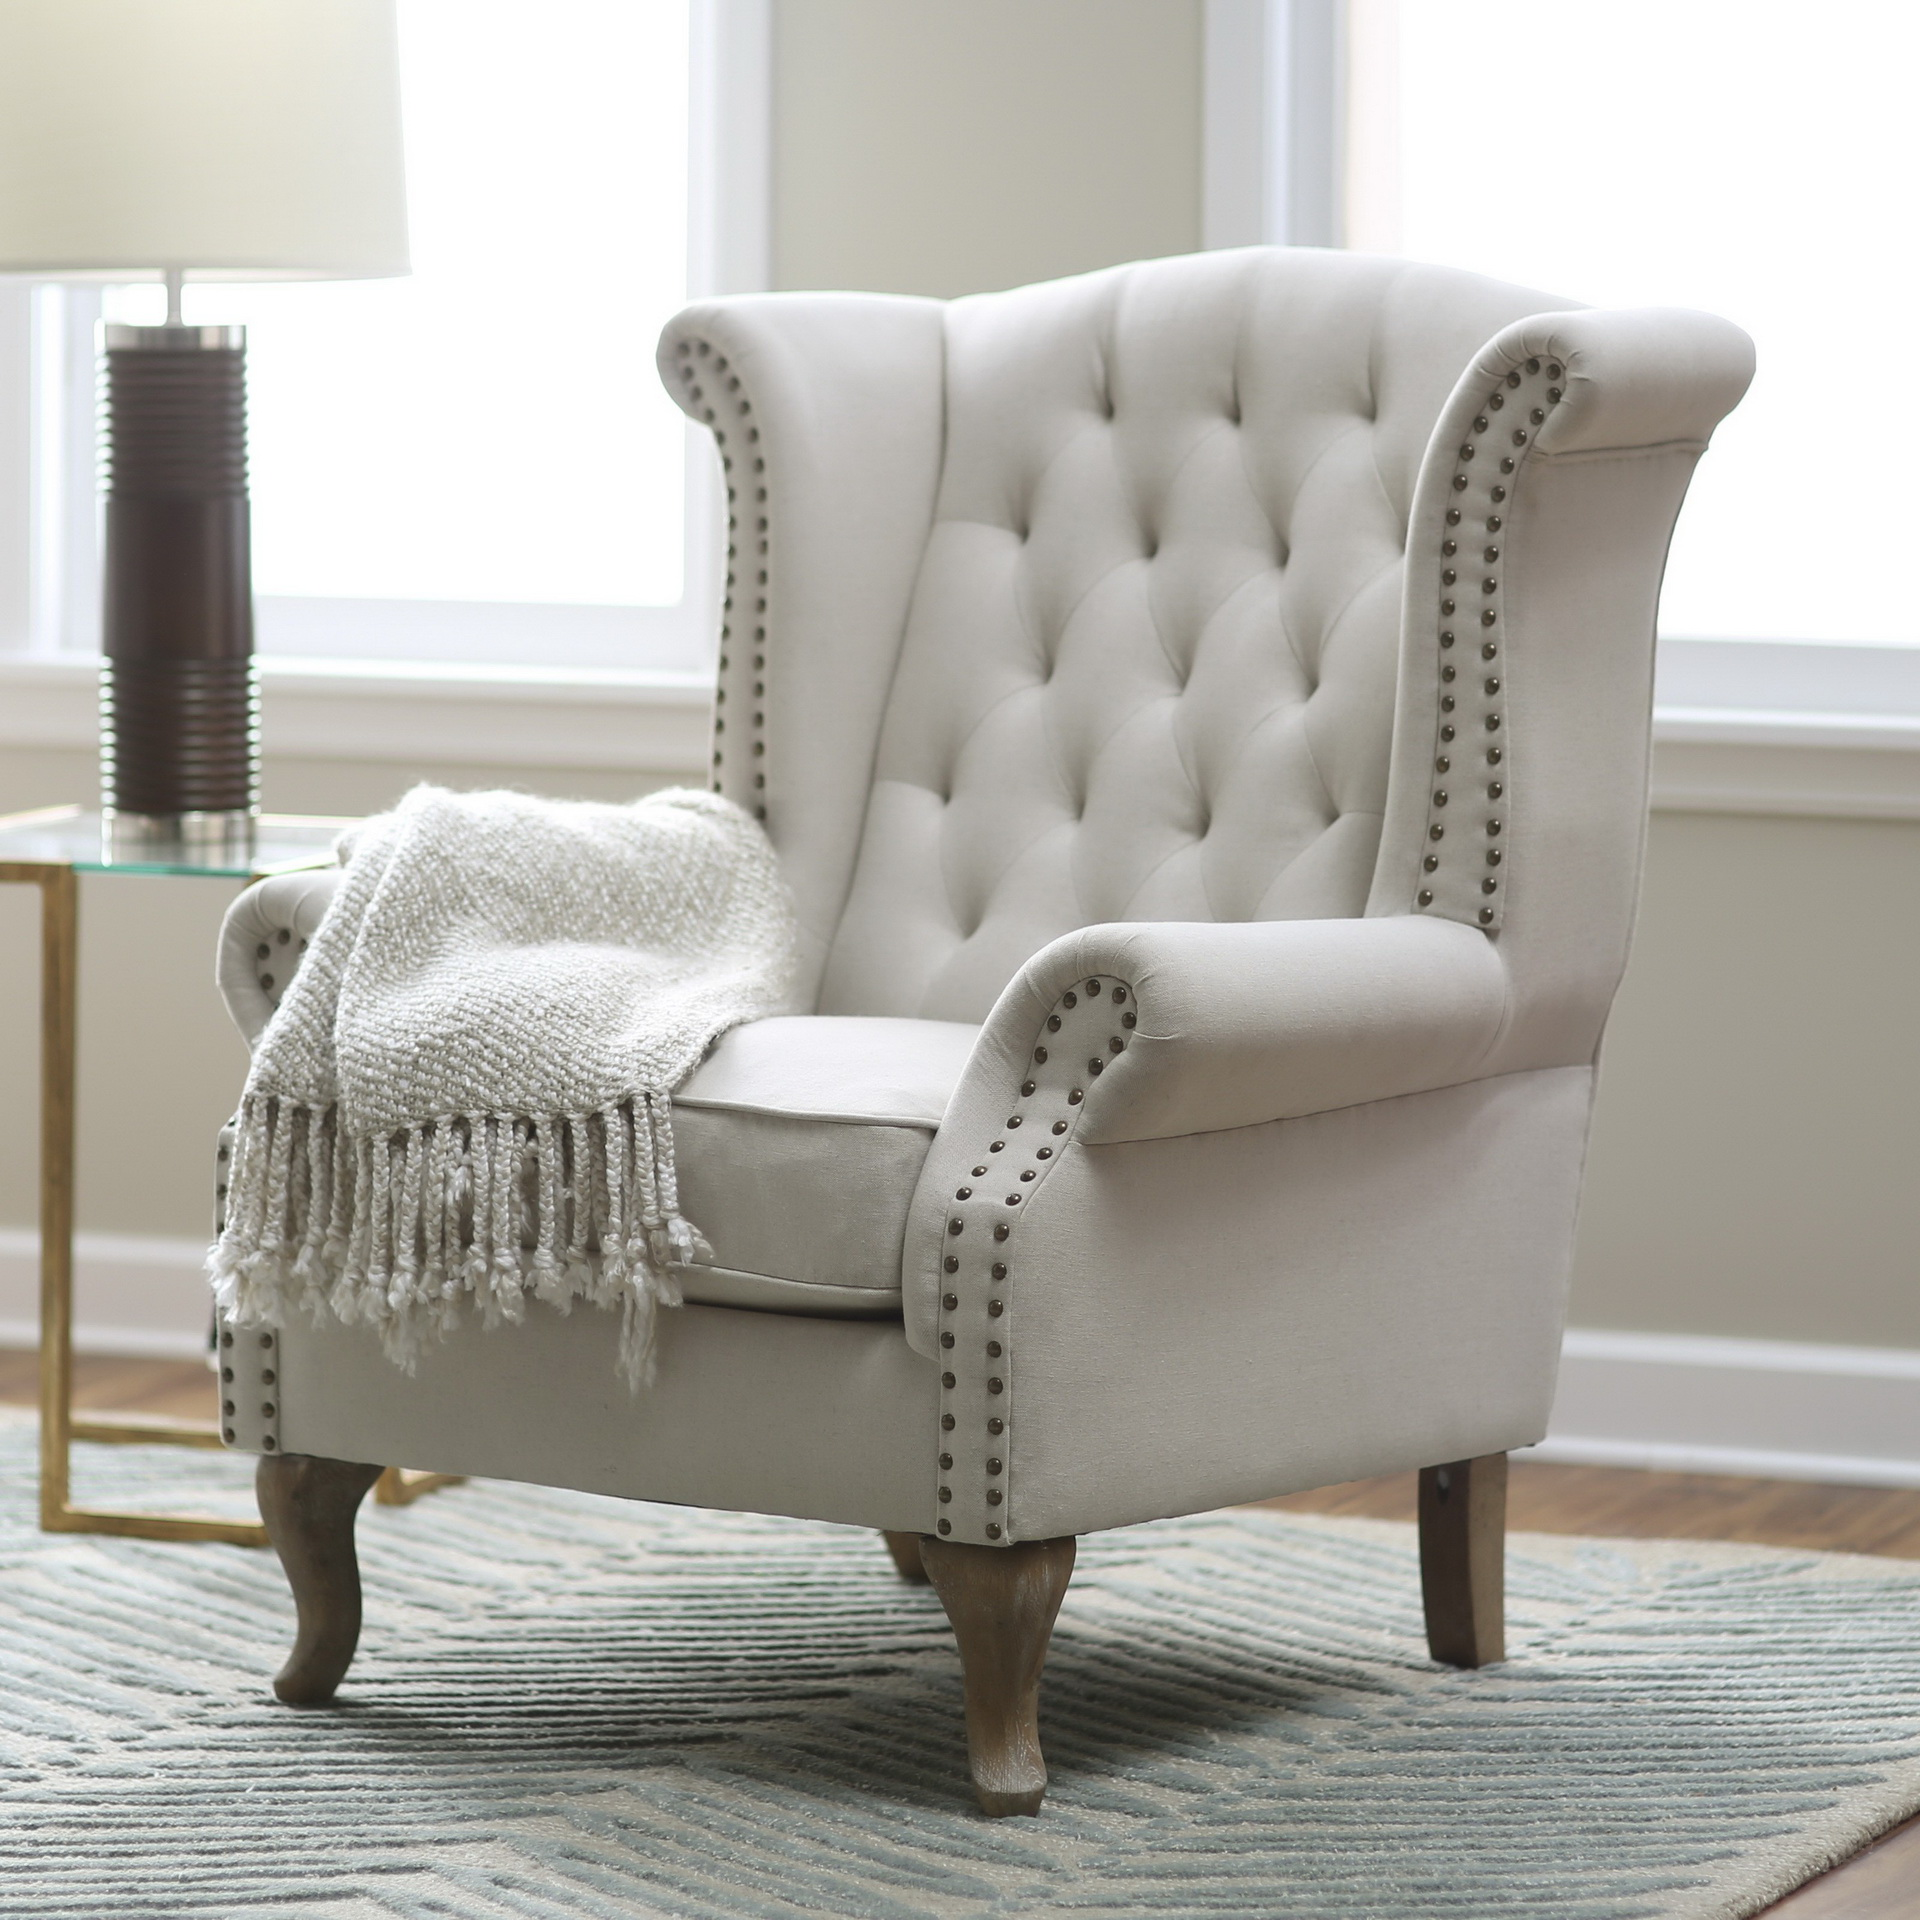 Accent chairs for living room - 23 reasons to buy   Hawk Haven